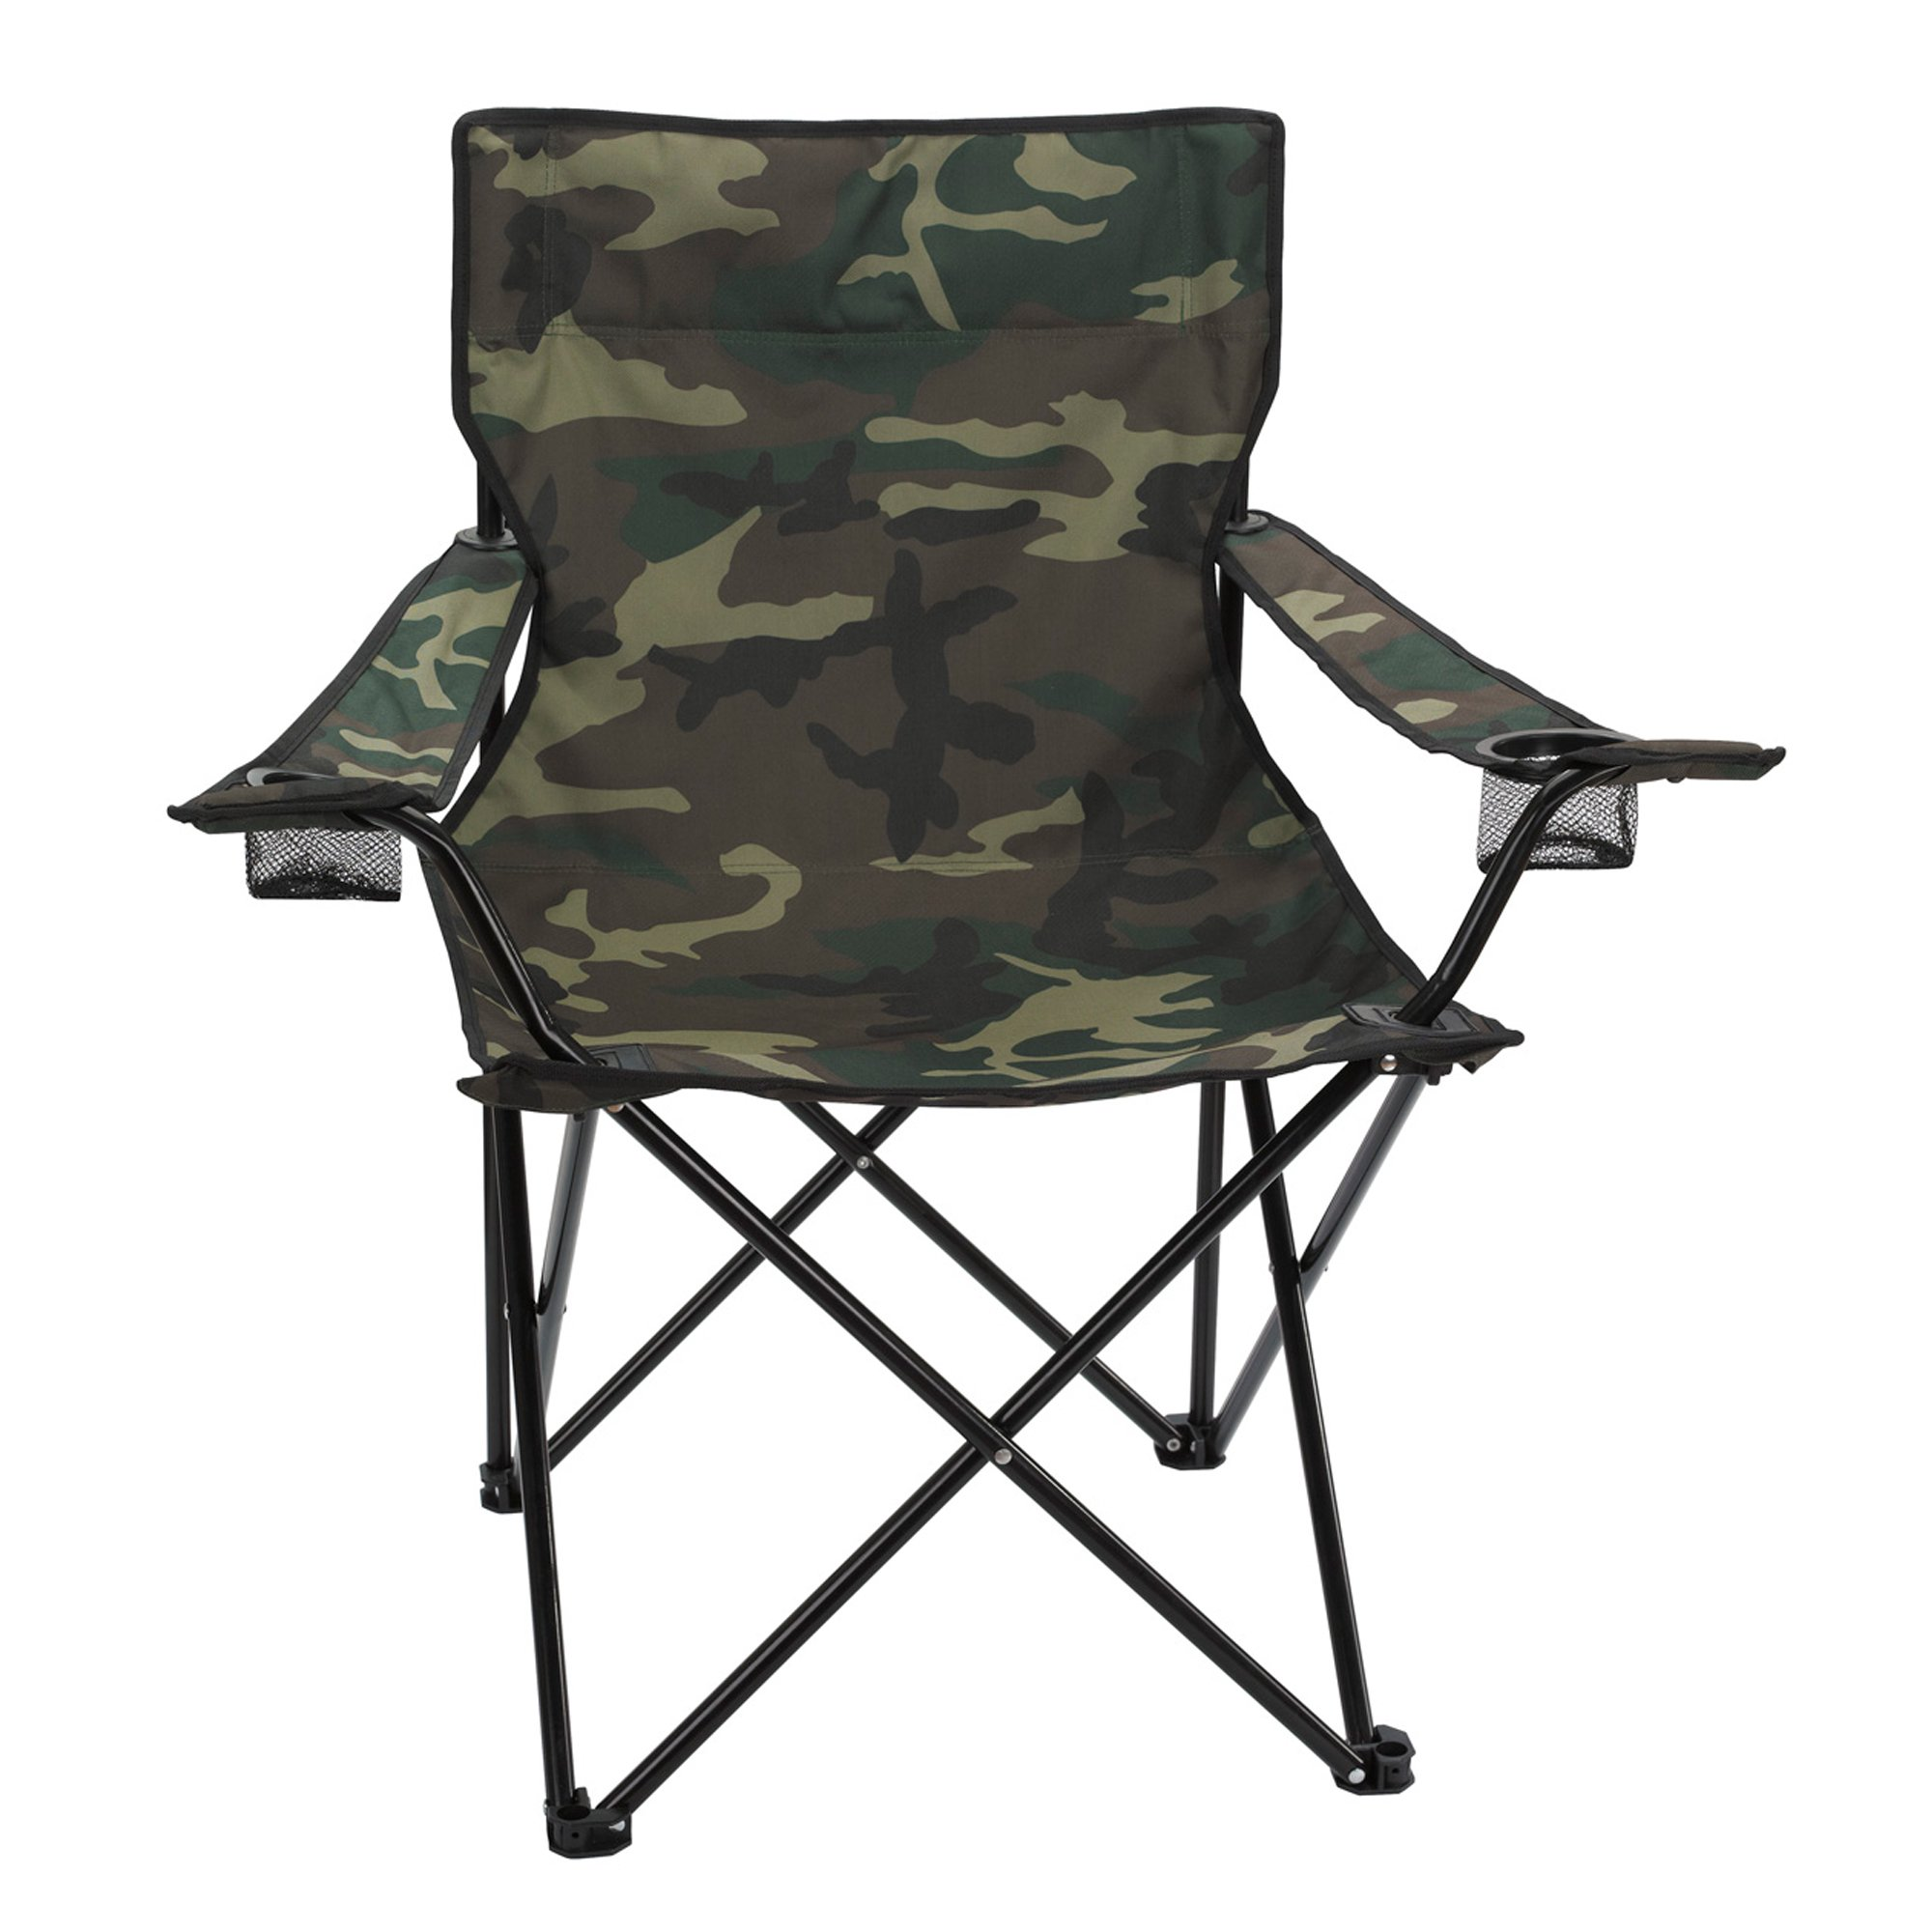 Camo Folding Chair Promotional Camo Folding Chair With Carrying Bag